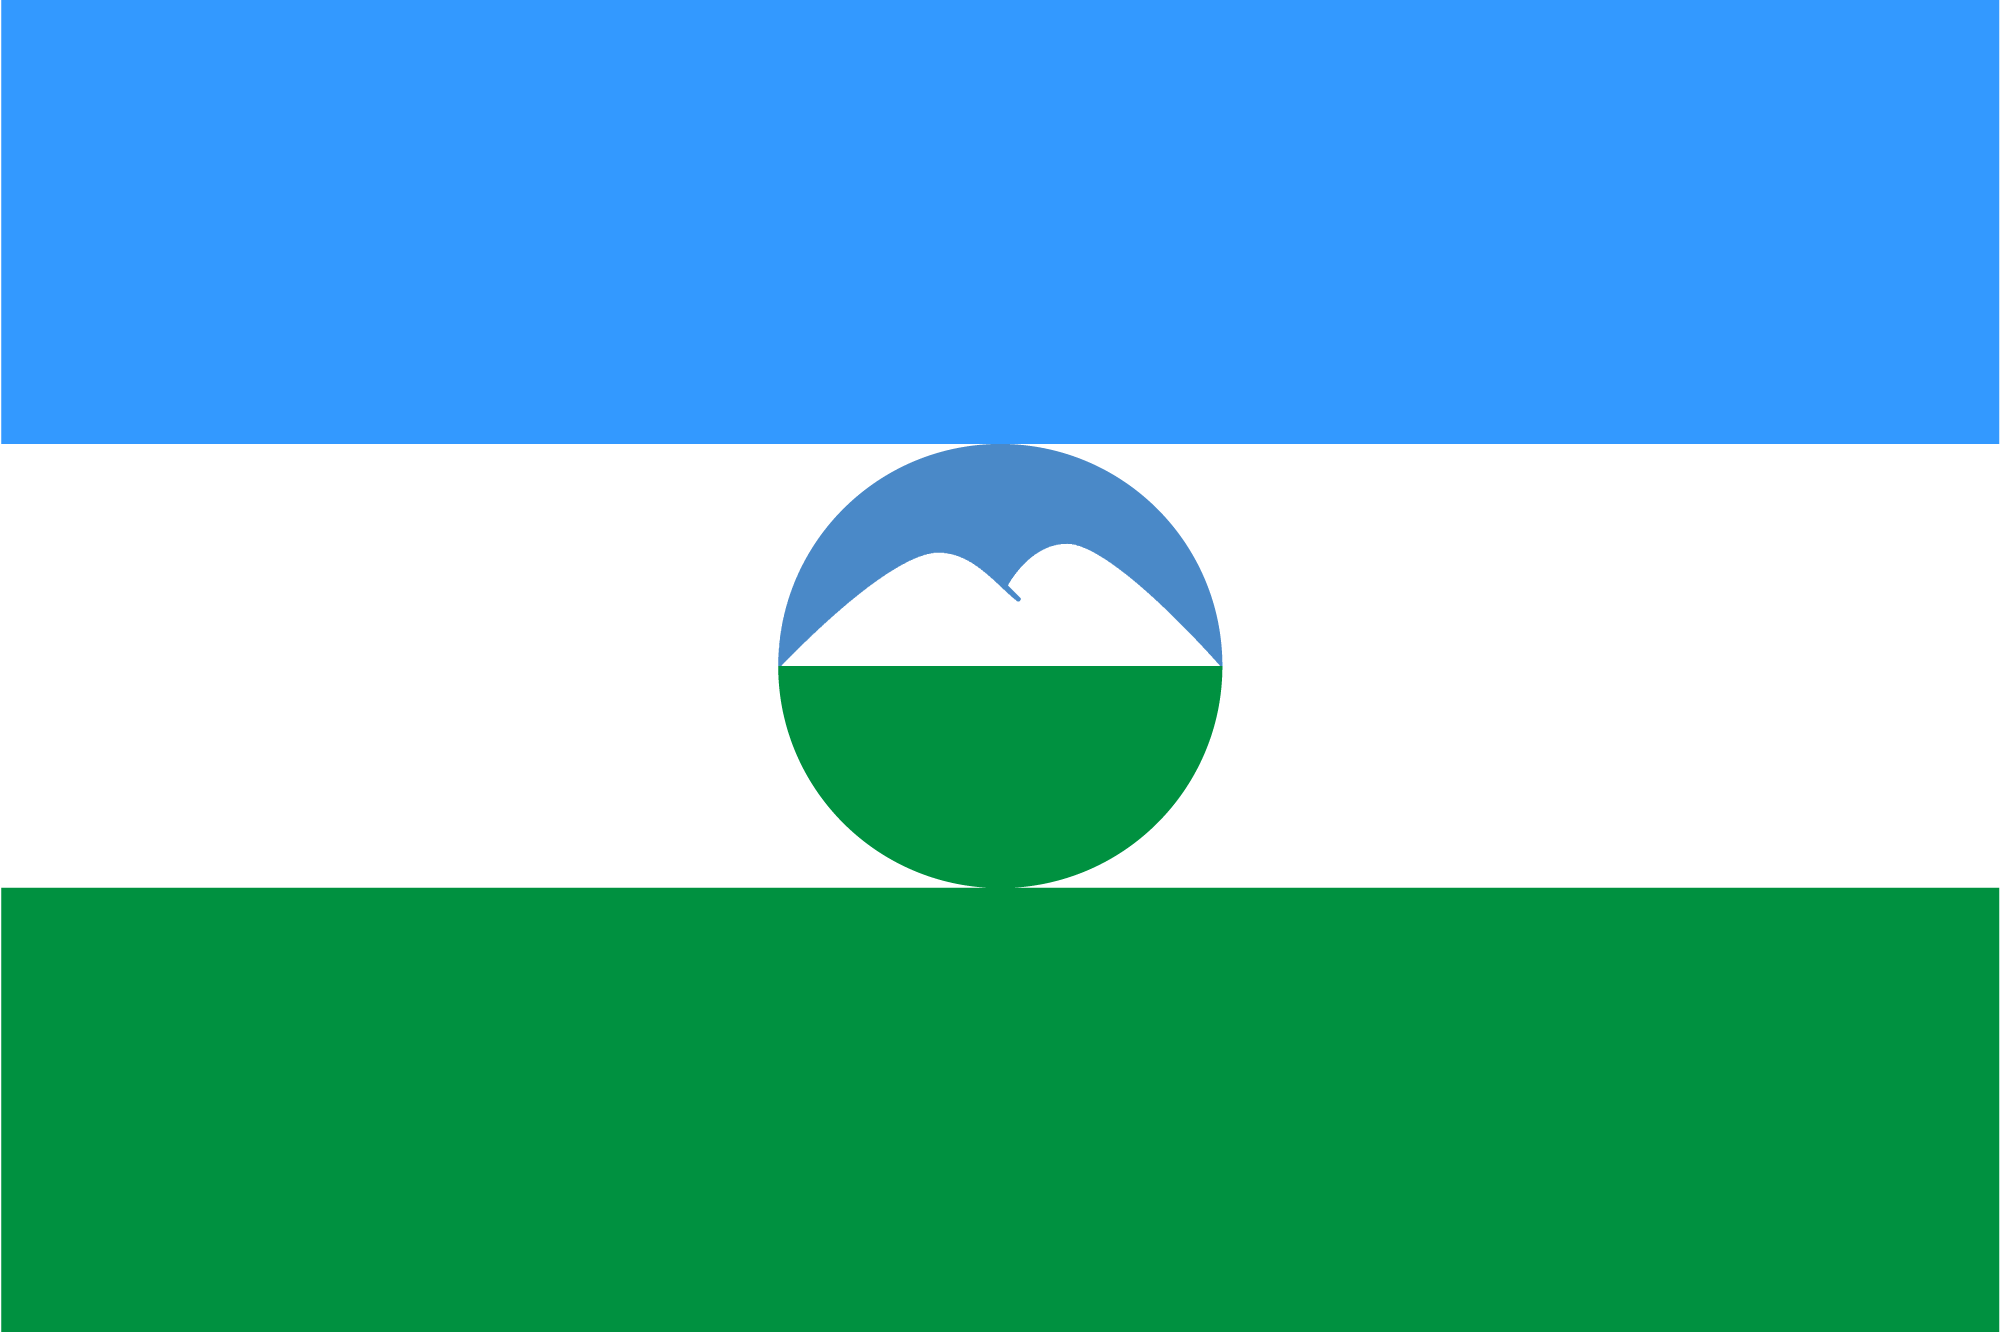 https://securenews.ru/wp-content/uploads/2016/04/flag_Kabardino-Balkarii.png